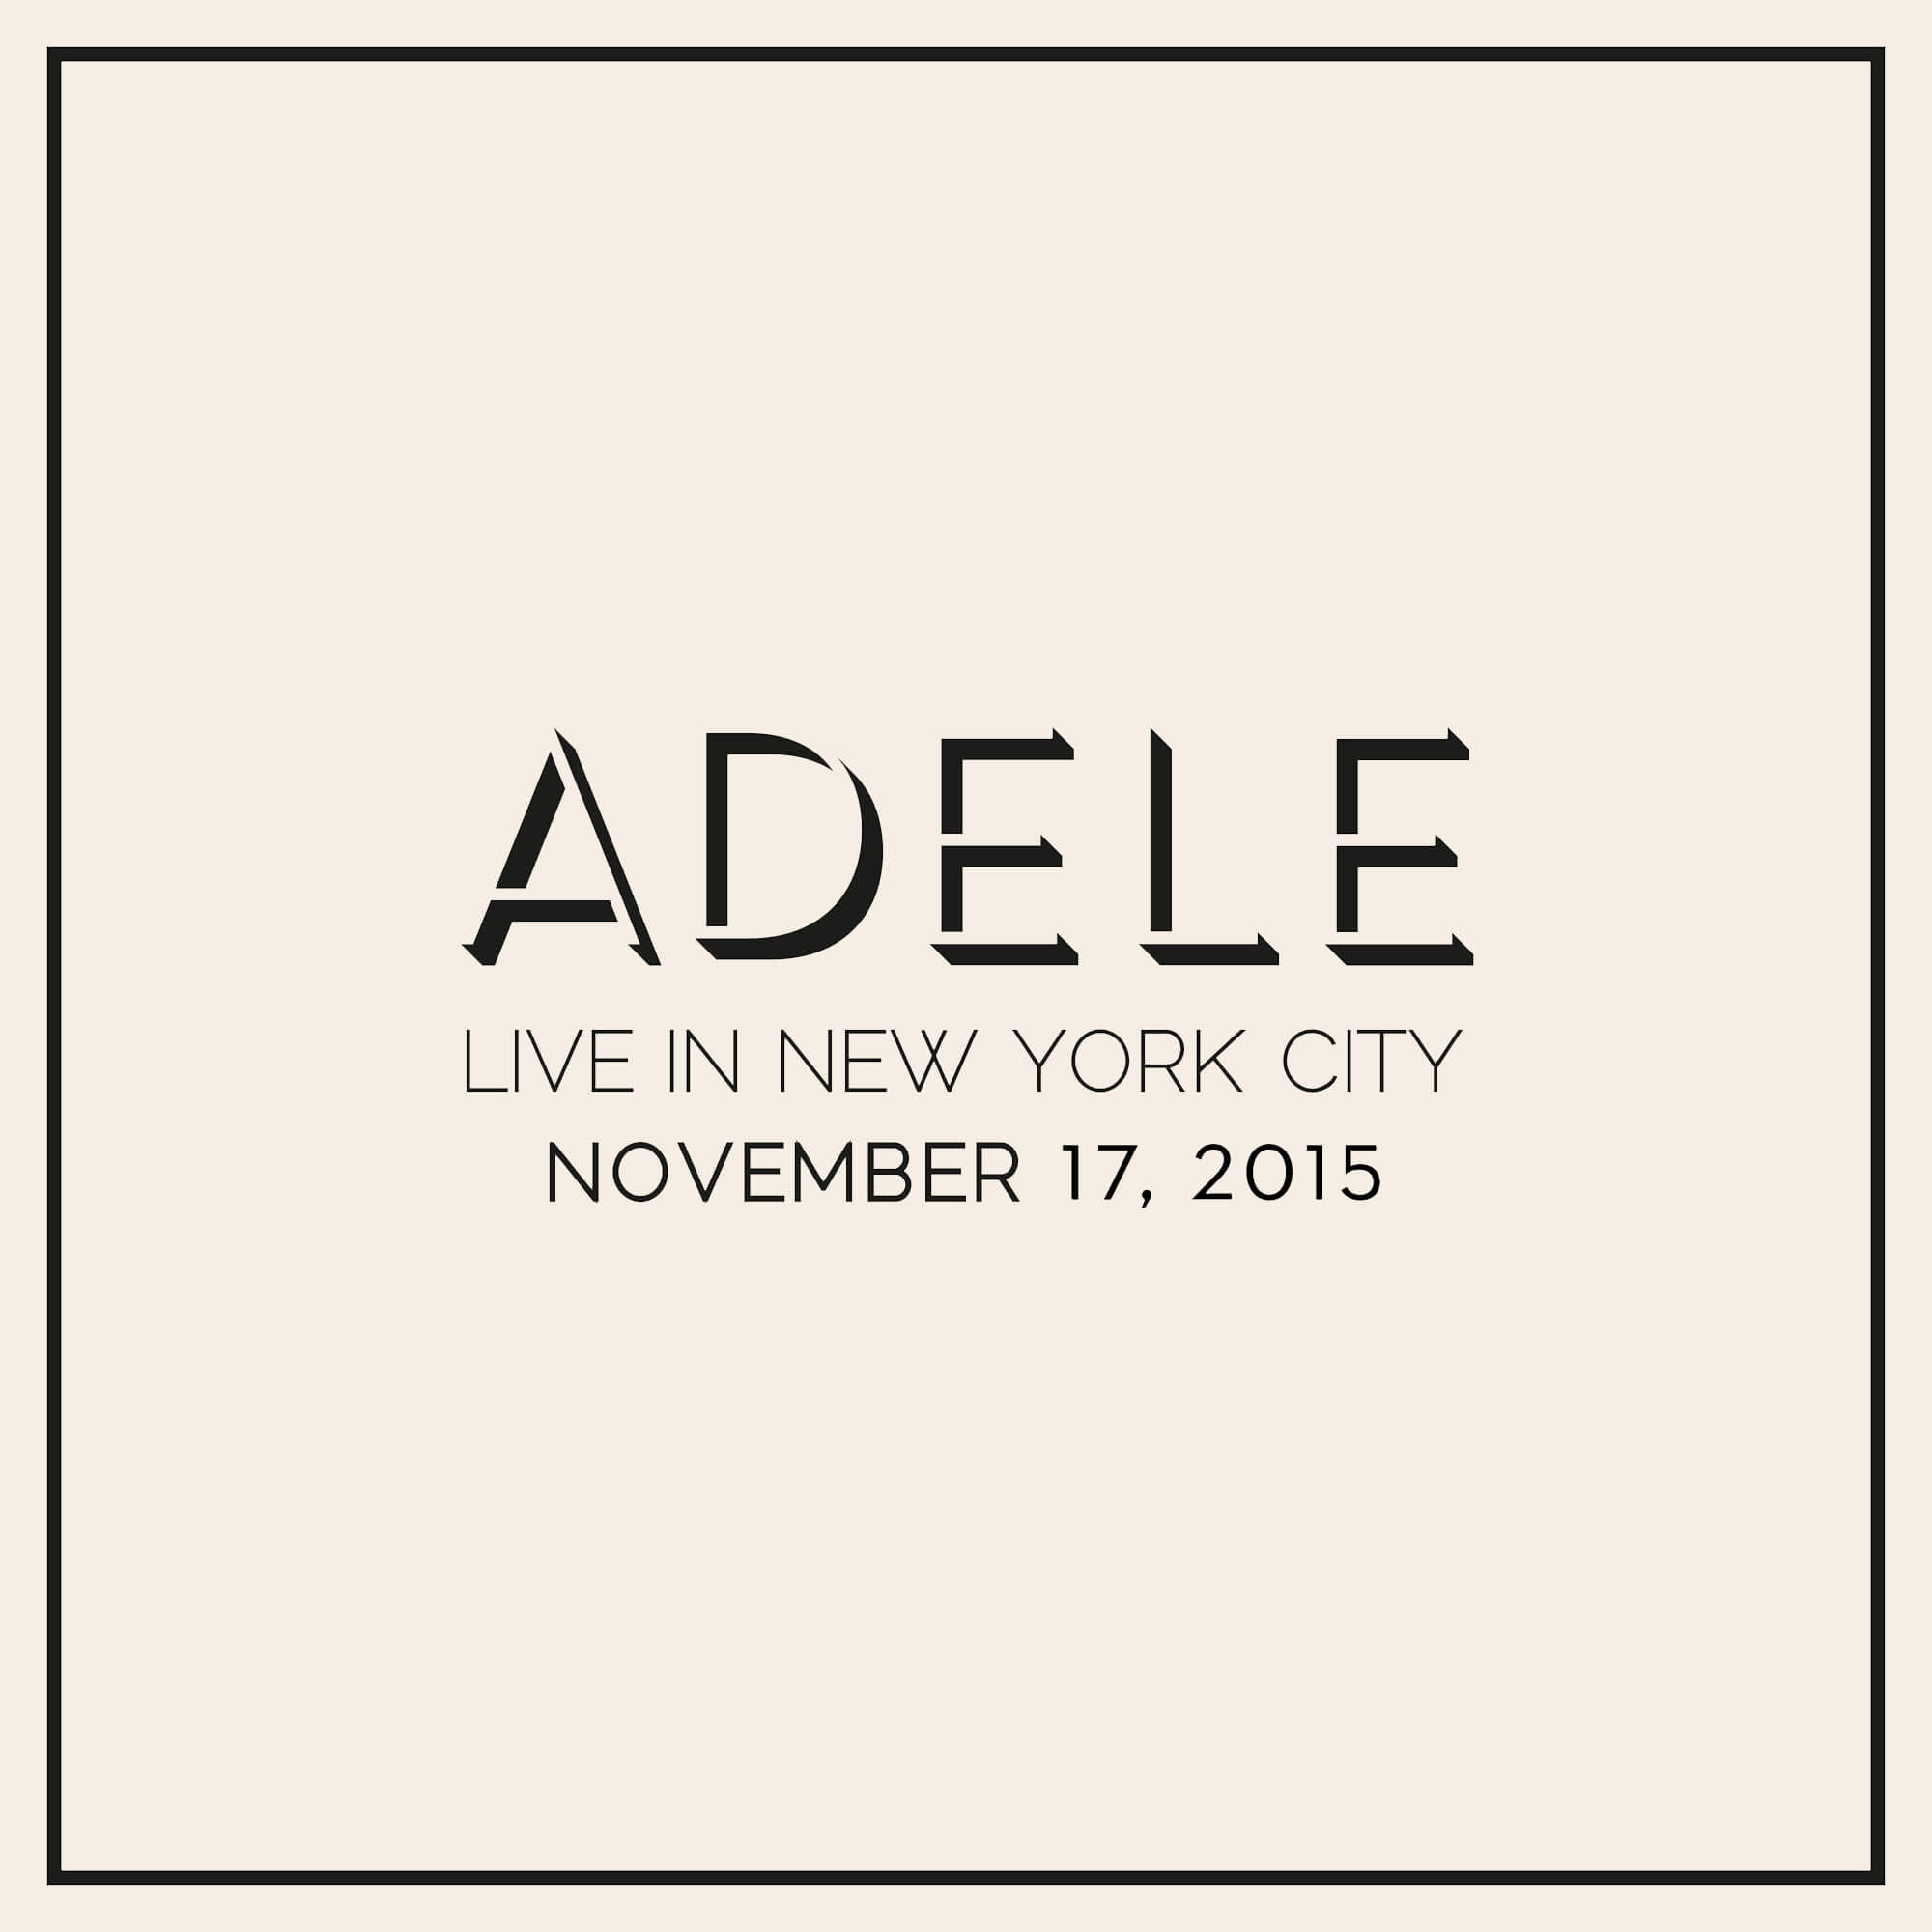 Adele Live Rolling In The Deep: Adele Live In New York City